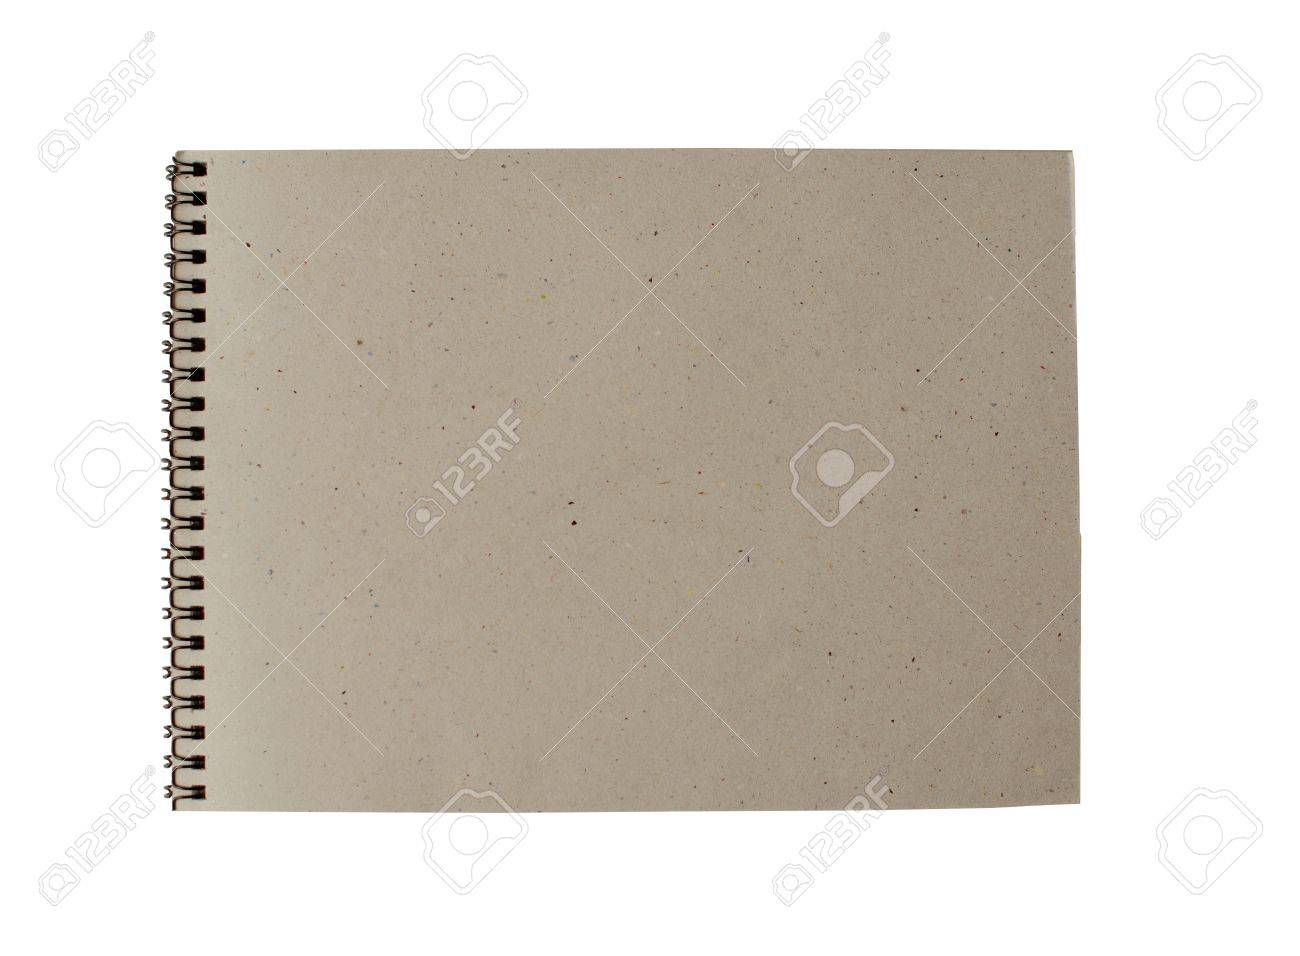 recycled paper notebook page with rings Stock Photo - 15047200